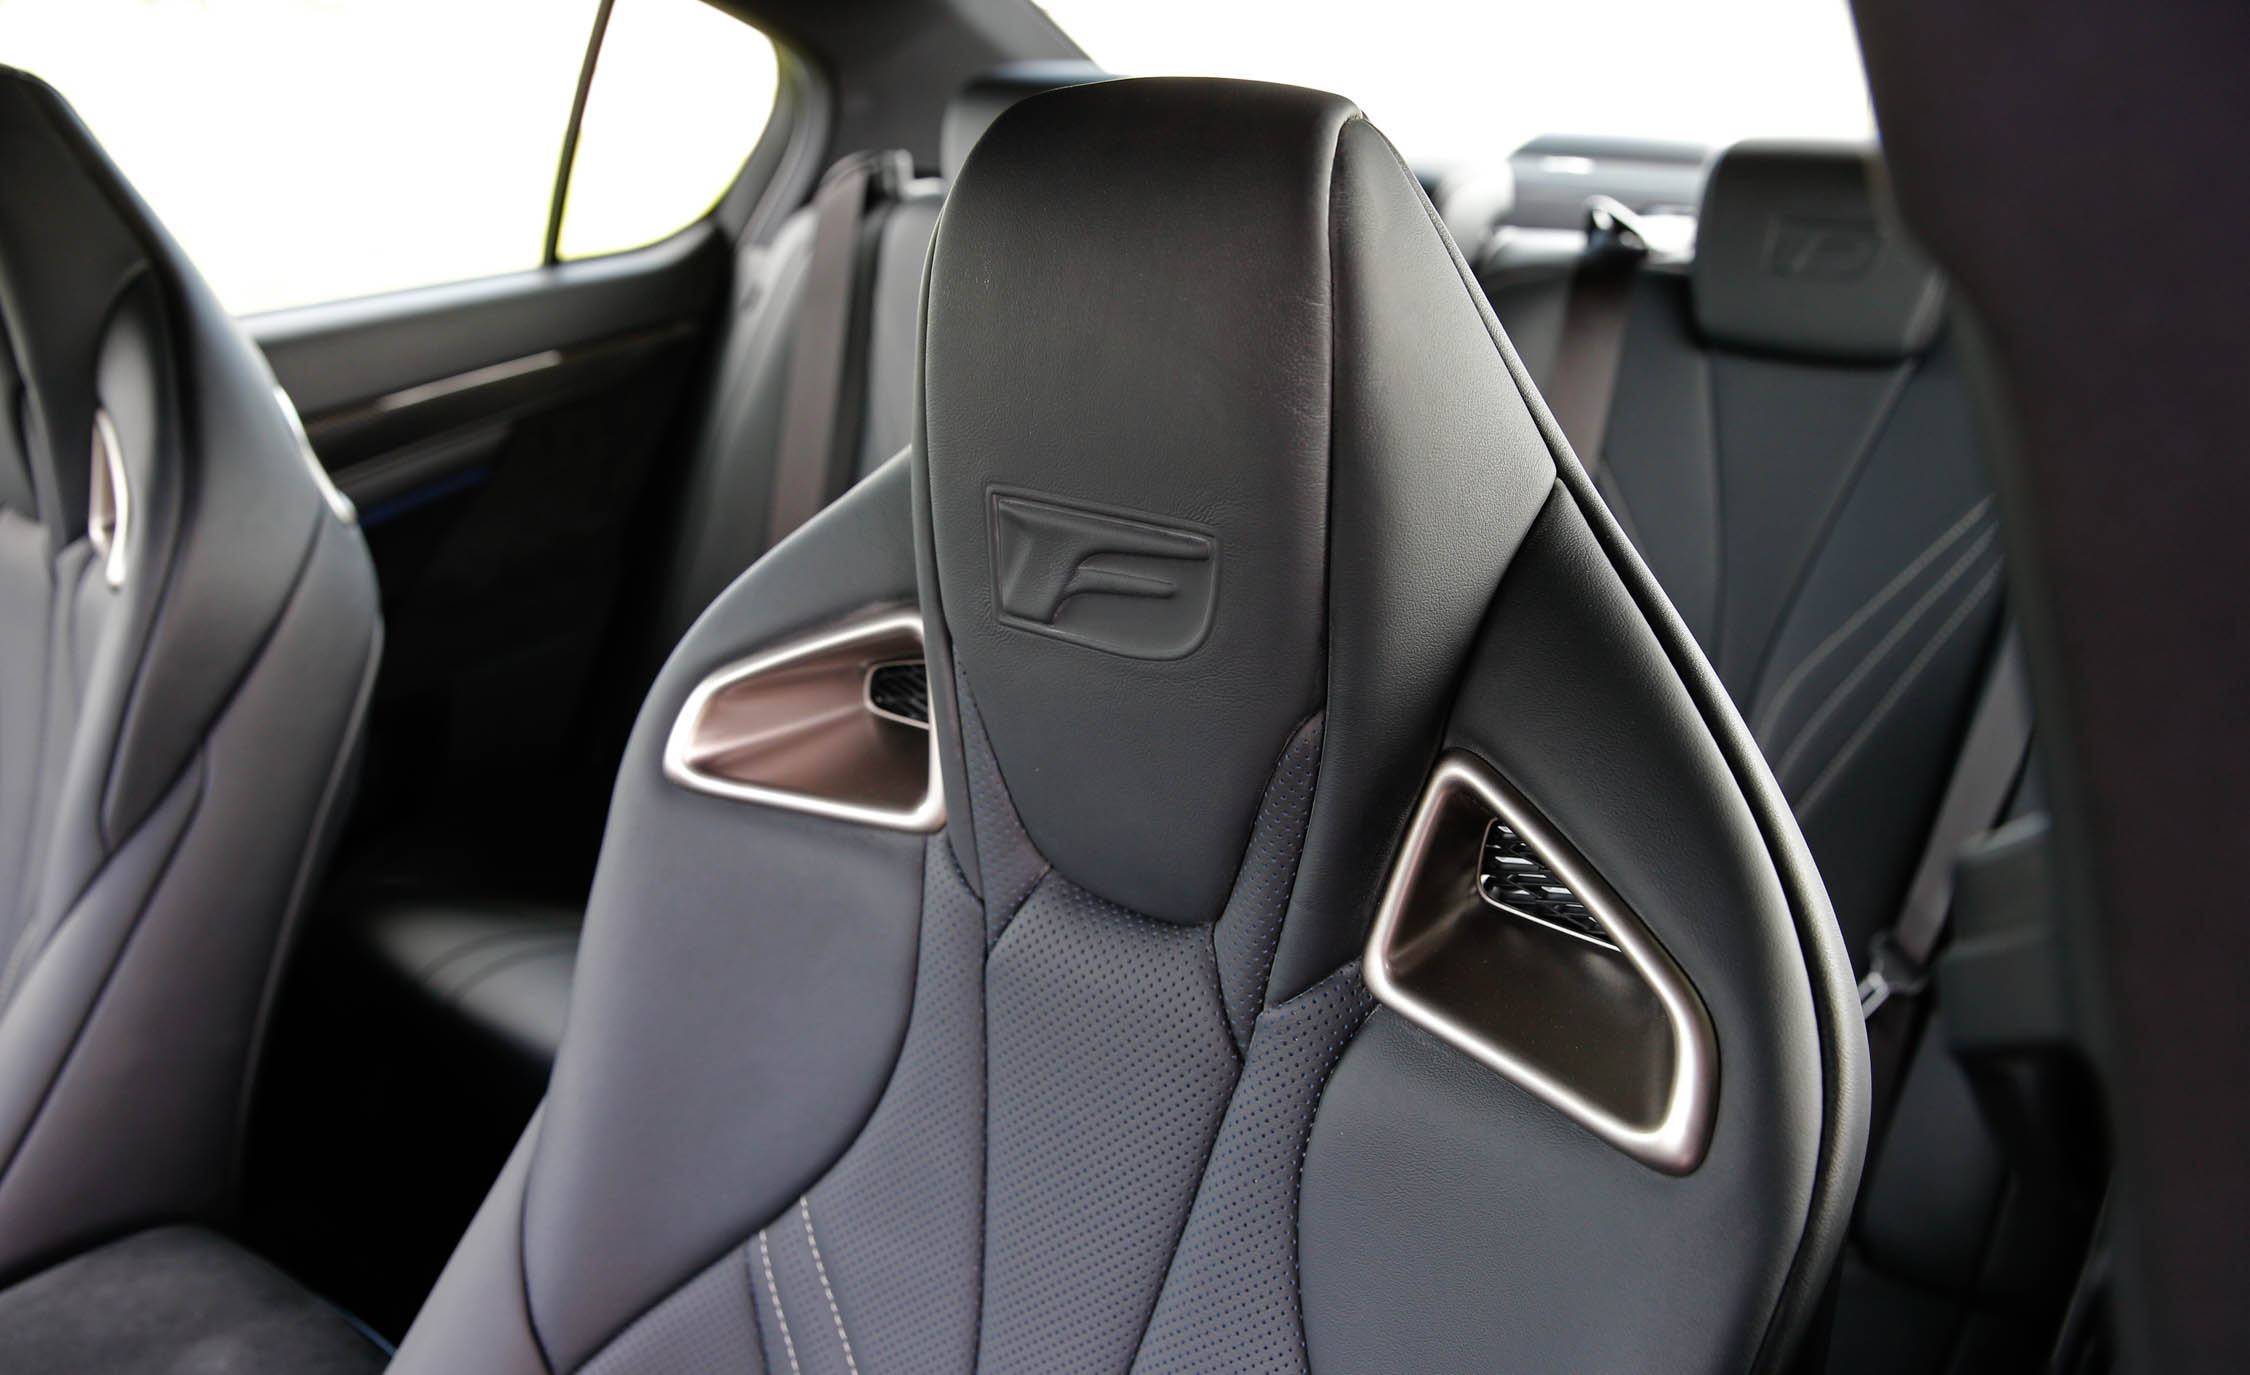 2016 Lexus Gs F Interior Seats Front (Photo 10 of 20)